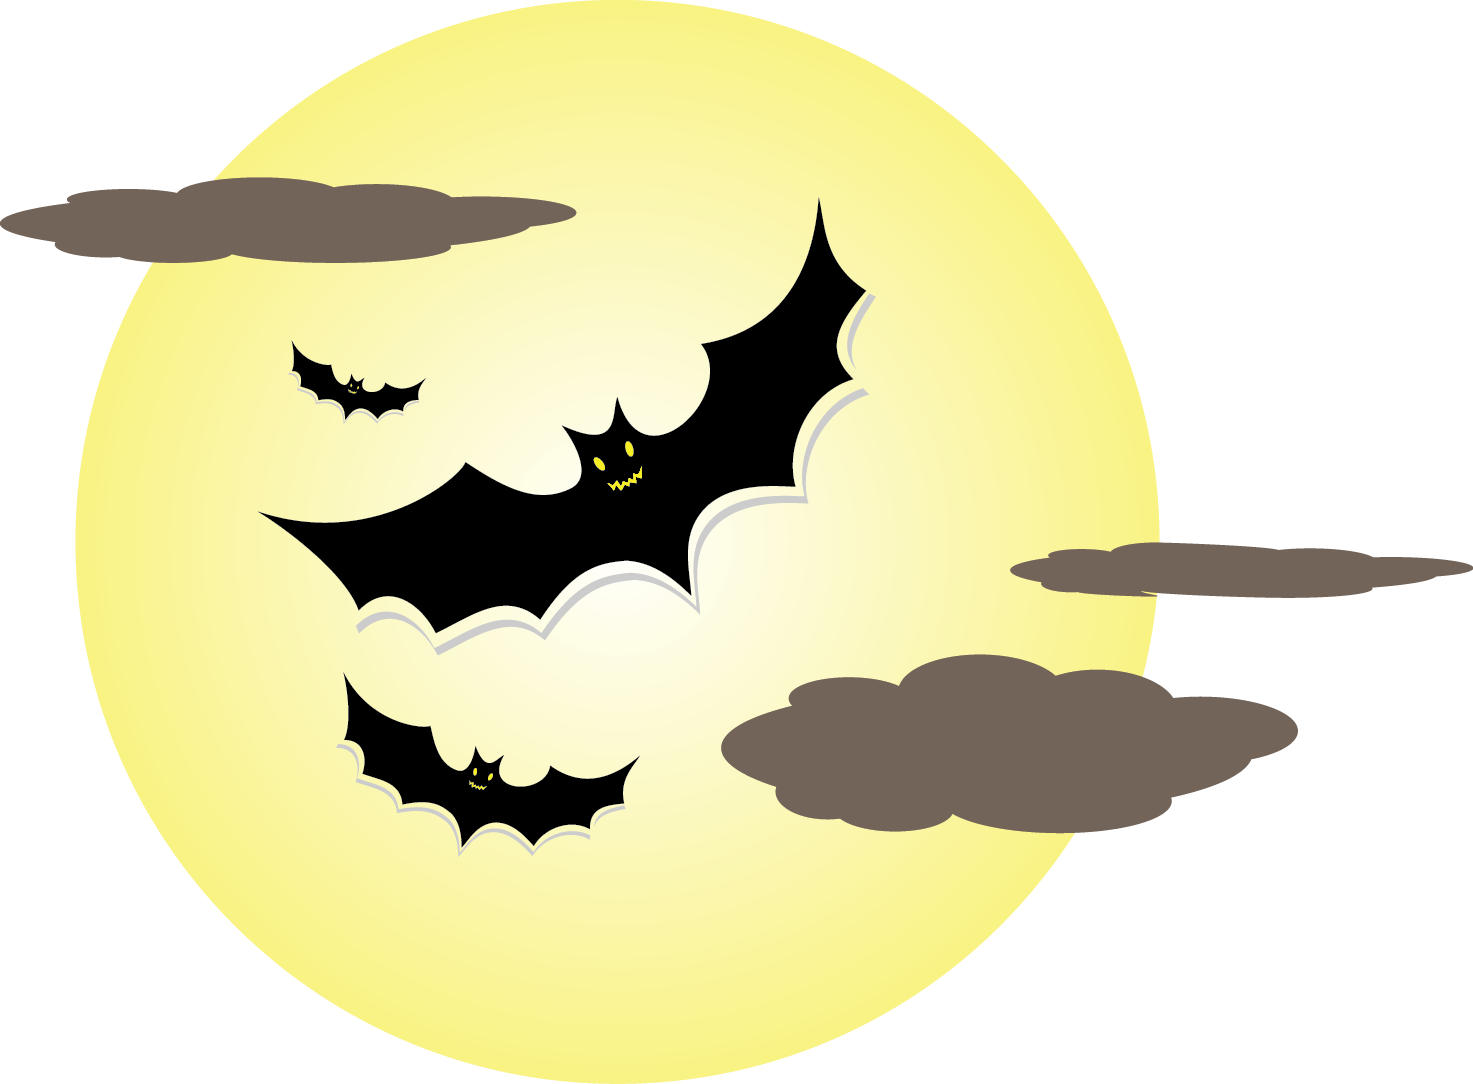 Halloween Moon Pictures . This Clip Art -Halloween Moon Pictures . This clip art of bats over a .-13